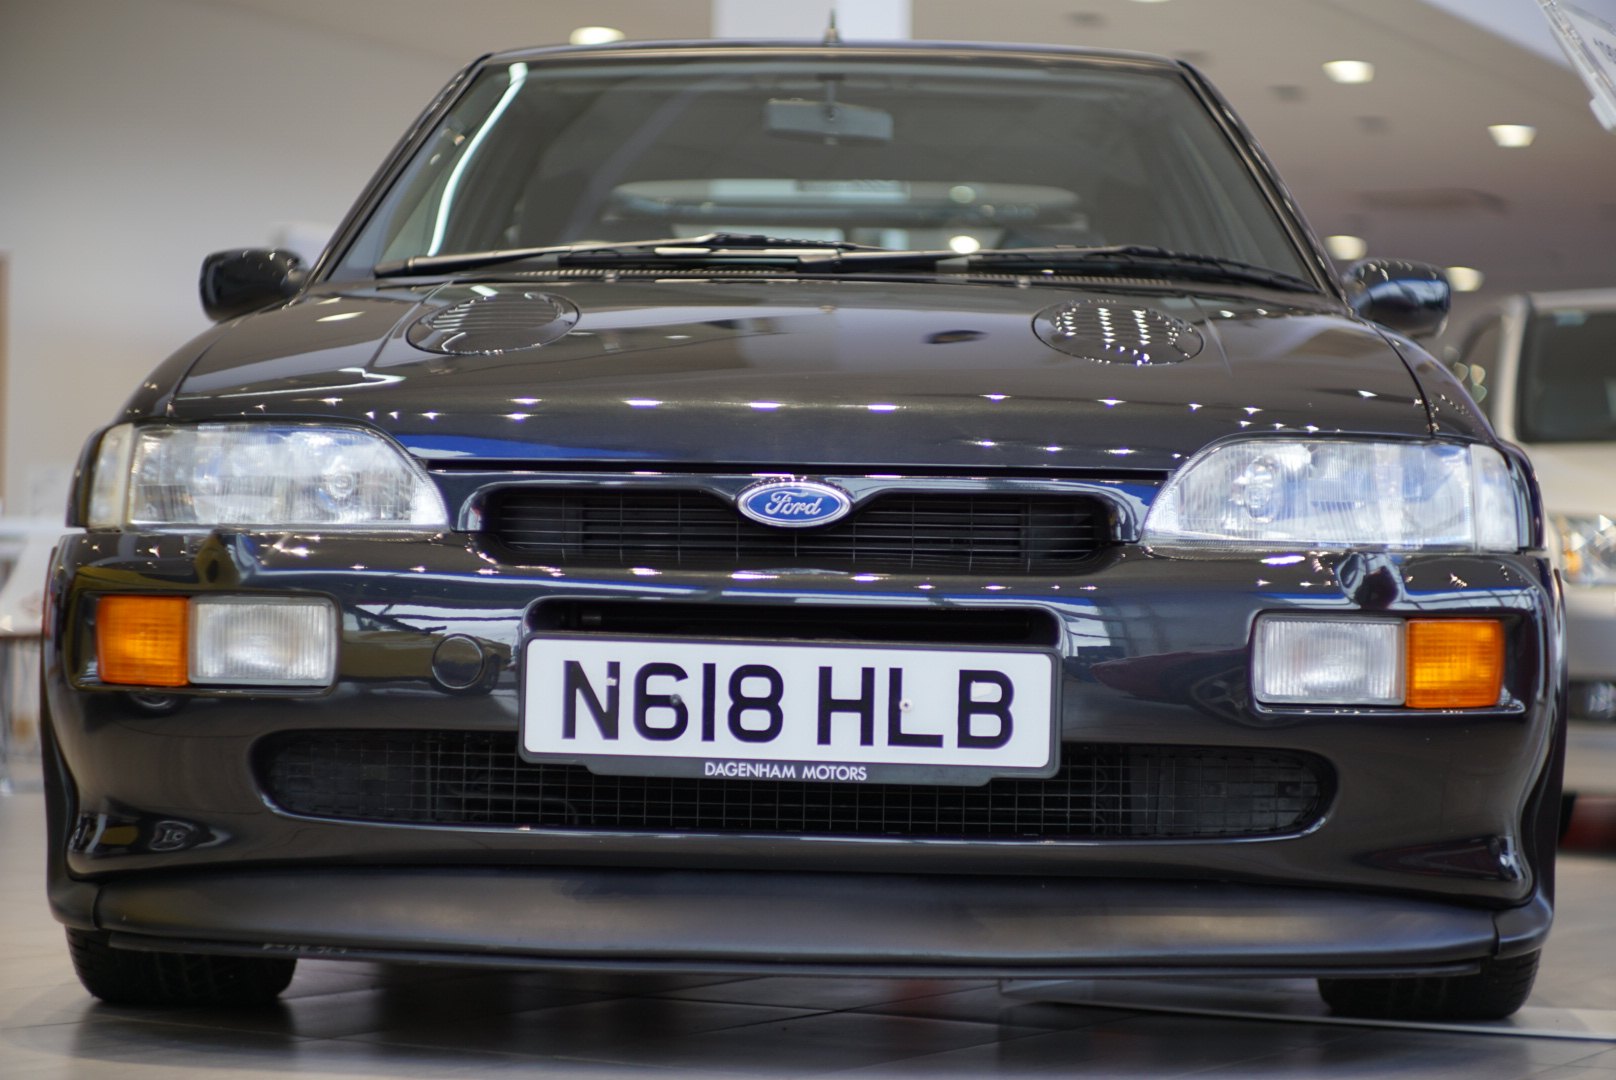 Front of the Ford Escort RS Cosworth